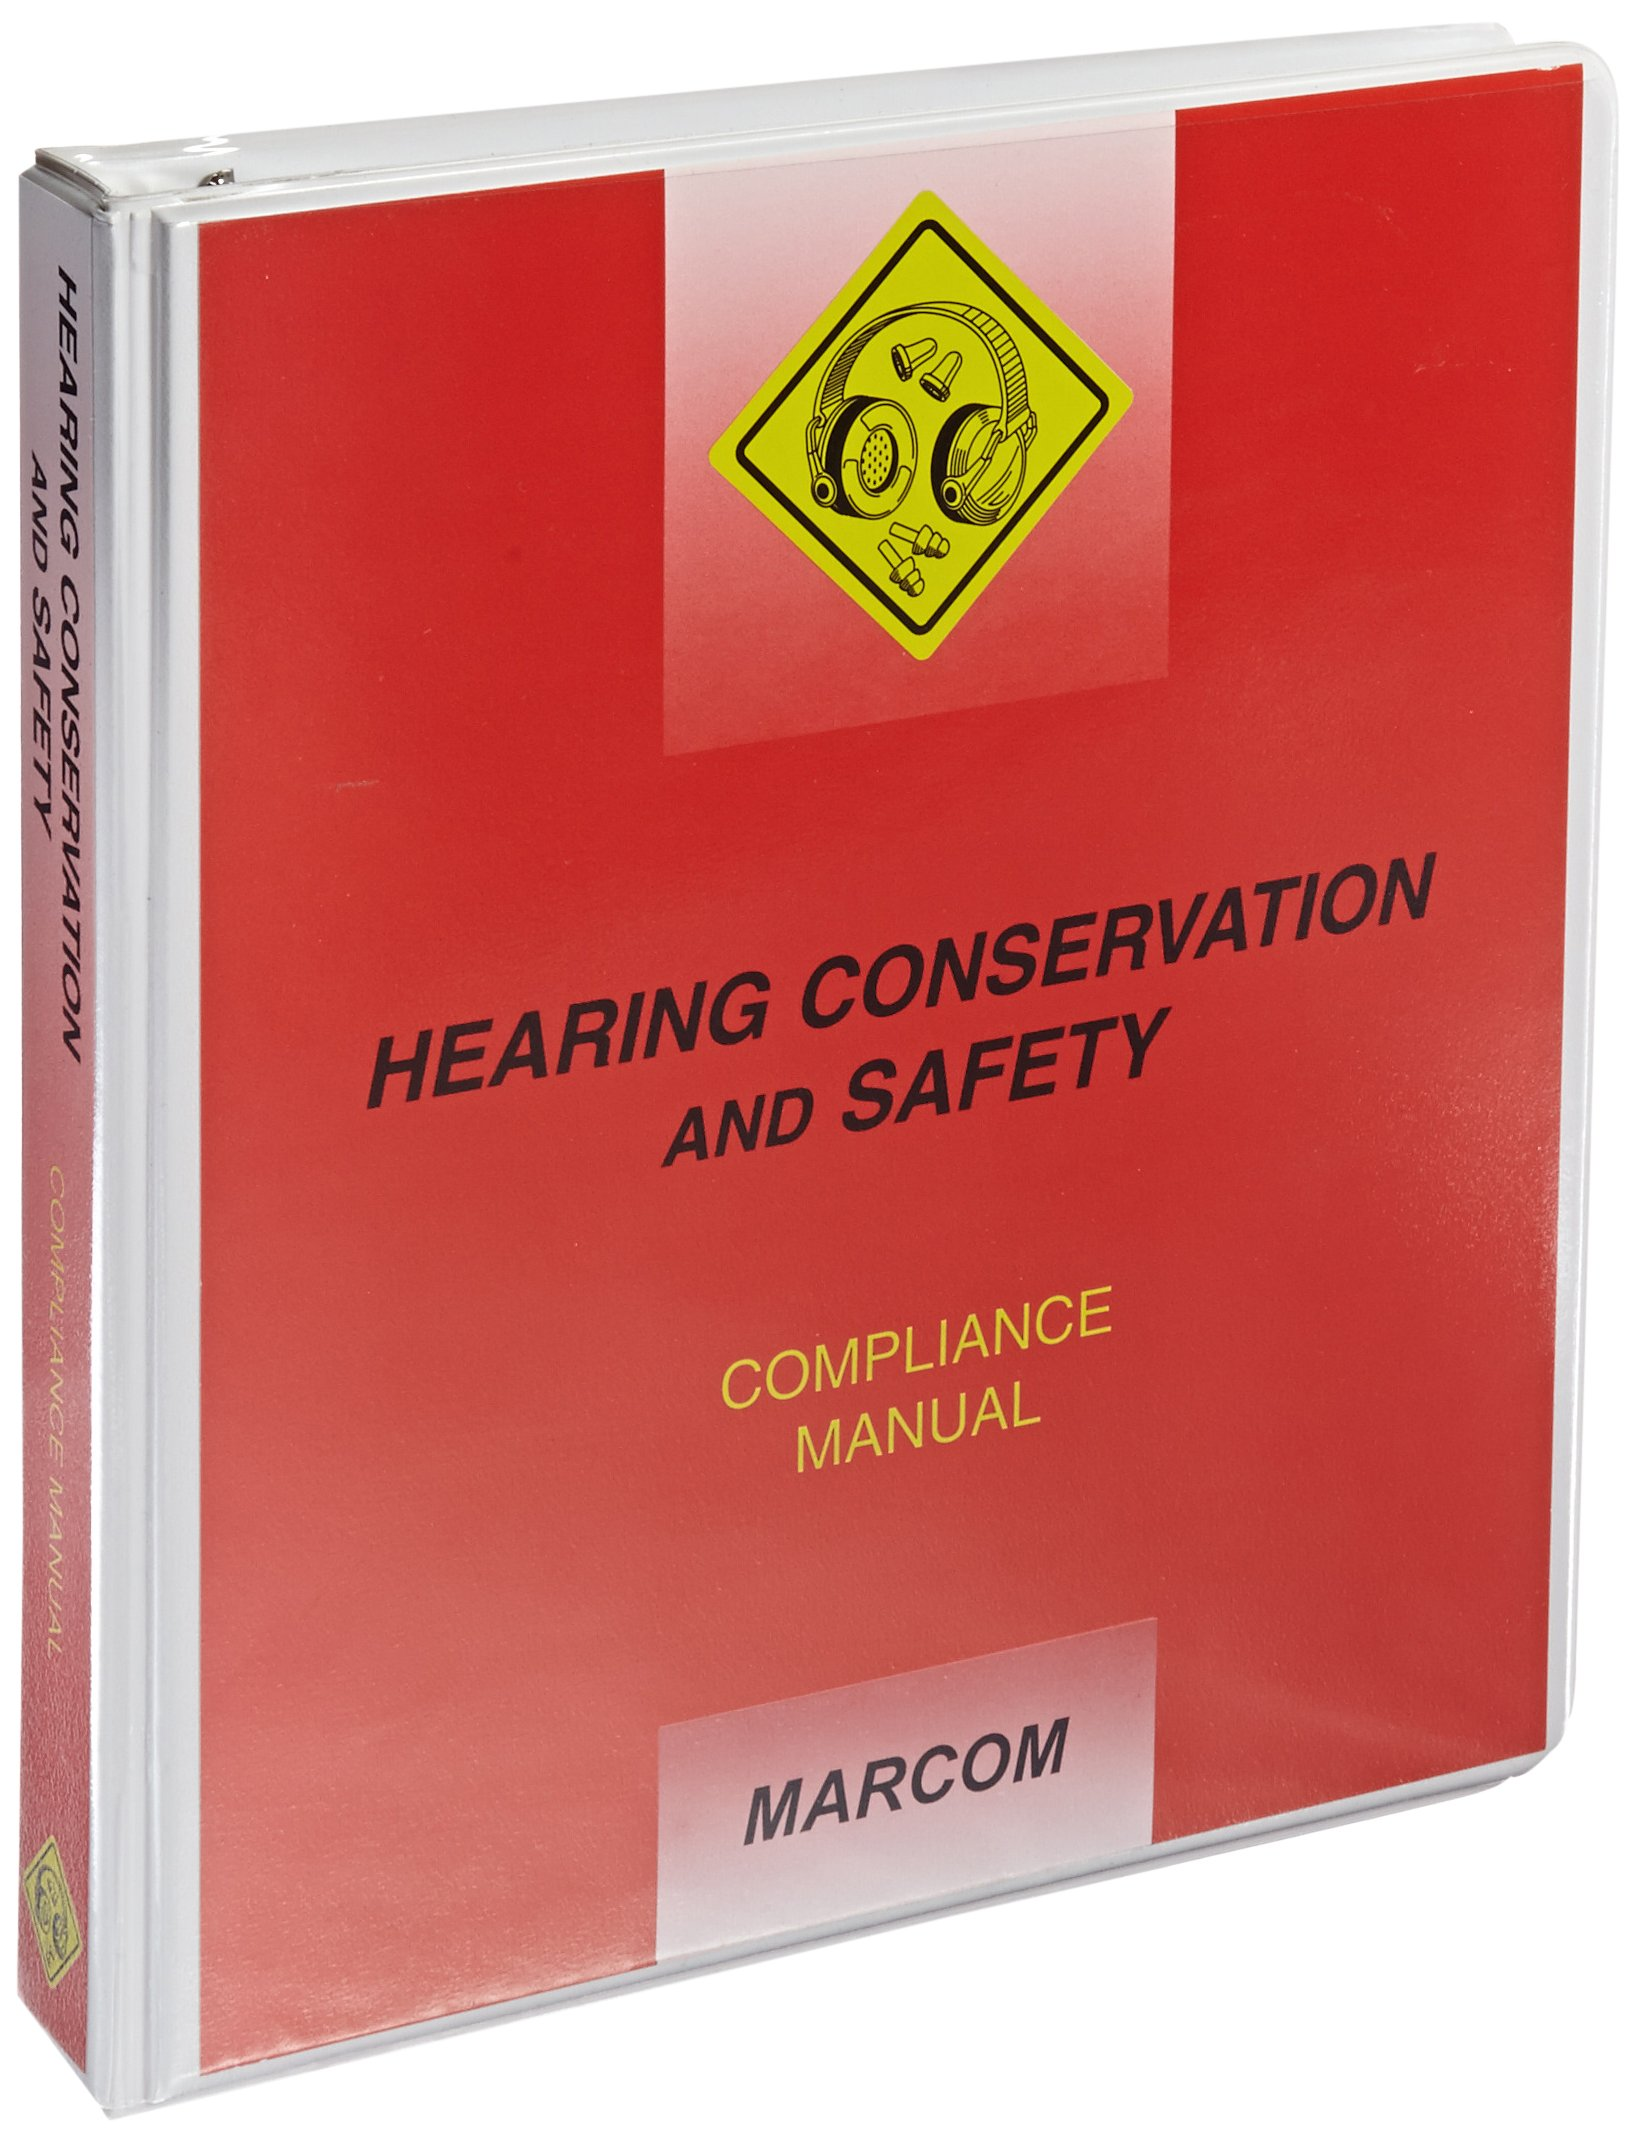 MARCOM Hearing Conservation and Safety Compliance Manual